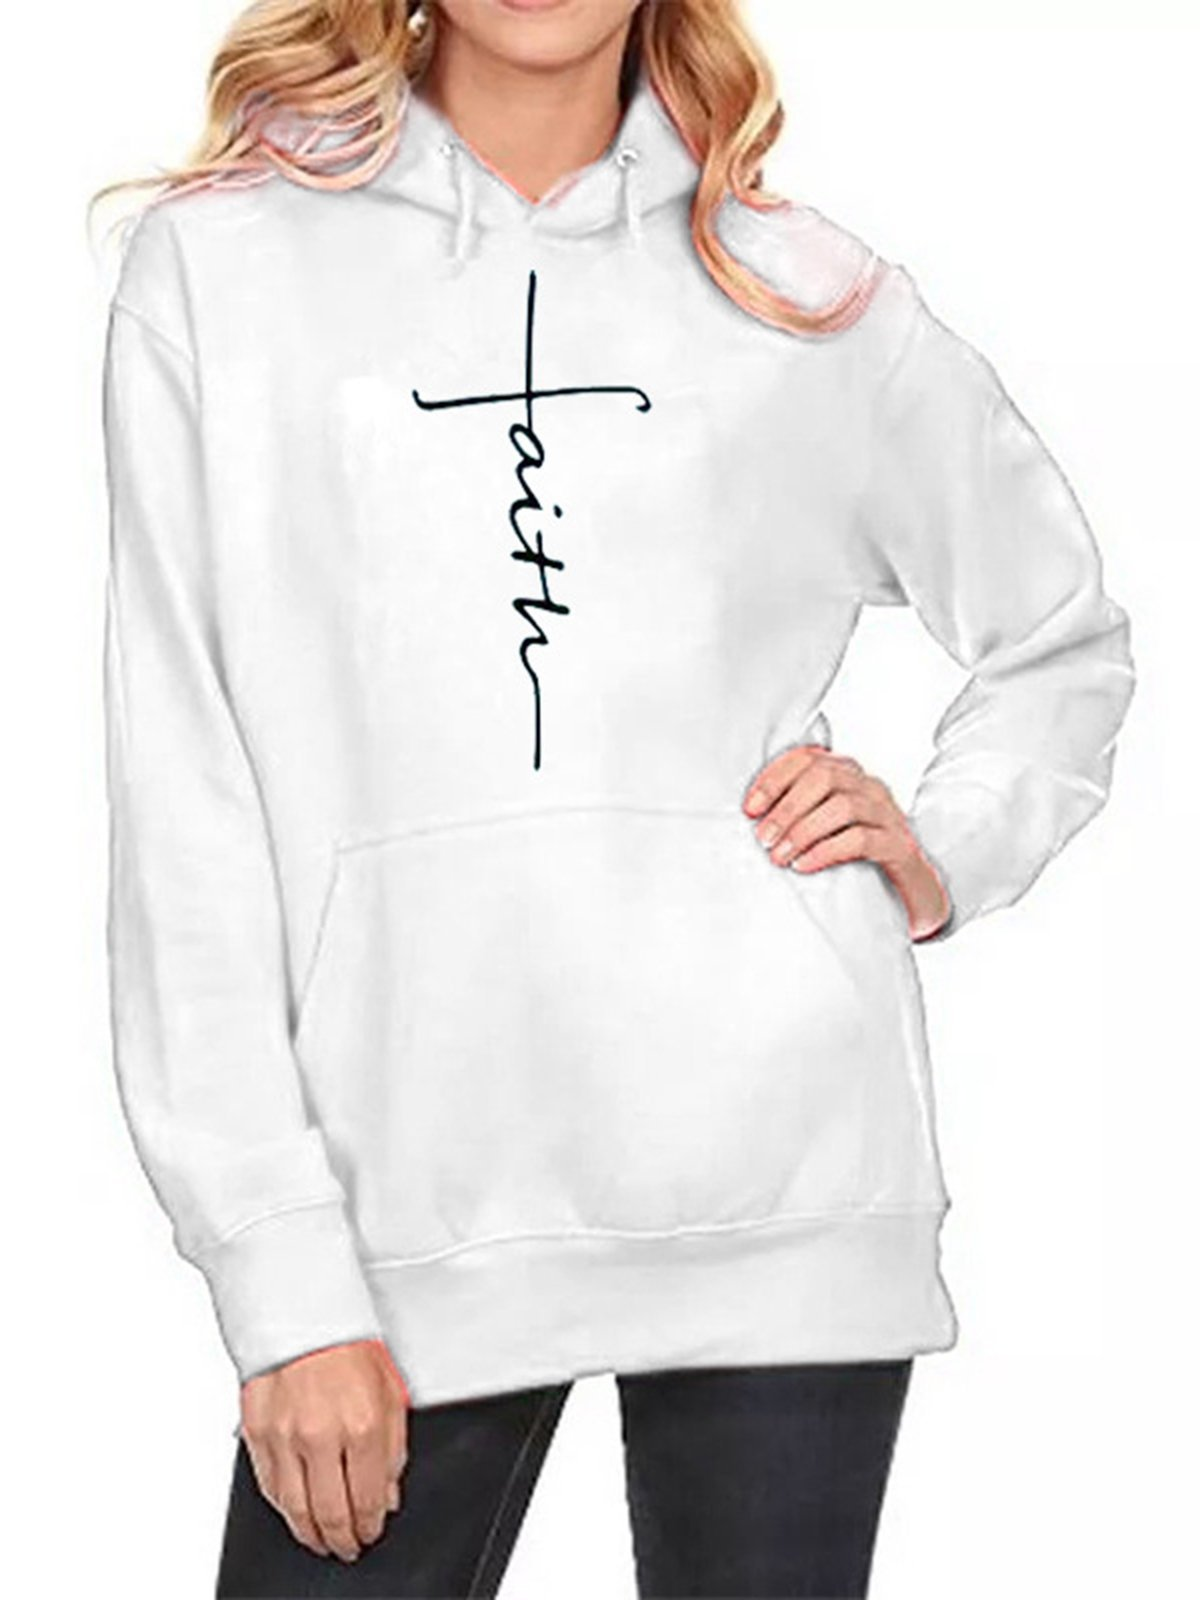 Casual Cotton-Blend Hoodie Long Sleeve Hoodies